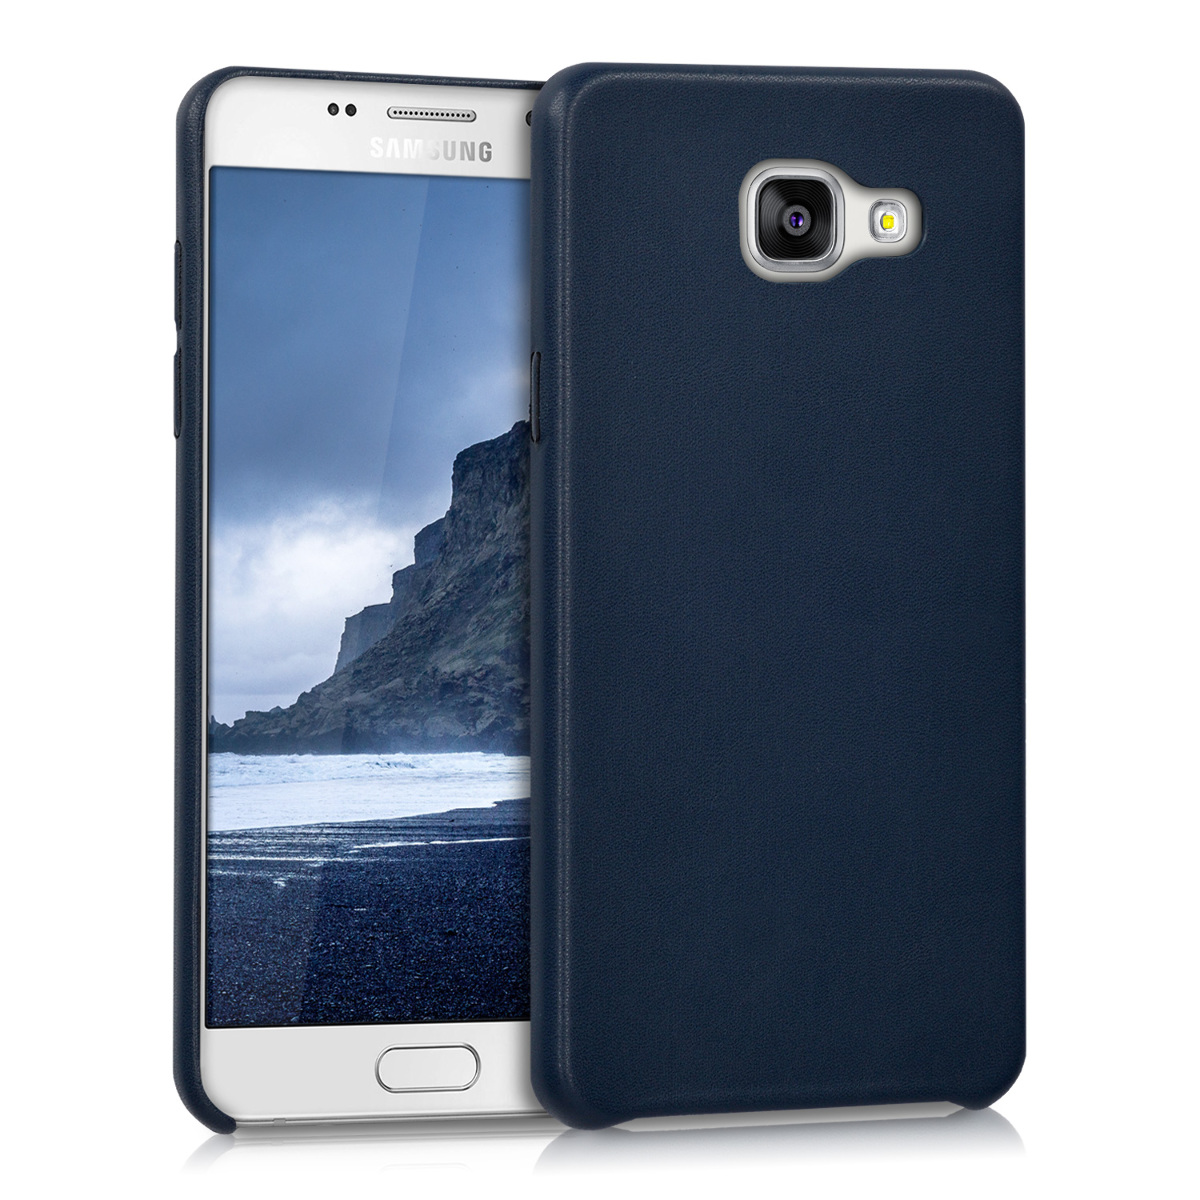 kwmobile Case for Samsung Galaxy A5 (2016) - Soft Durable Shockproof Premium PU Leather Smartphone Back Cover - Dark Blue